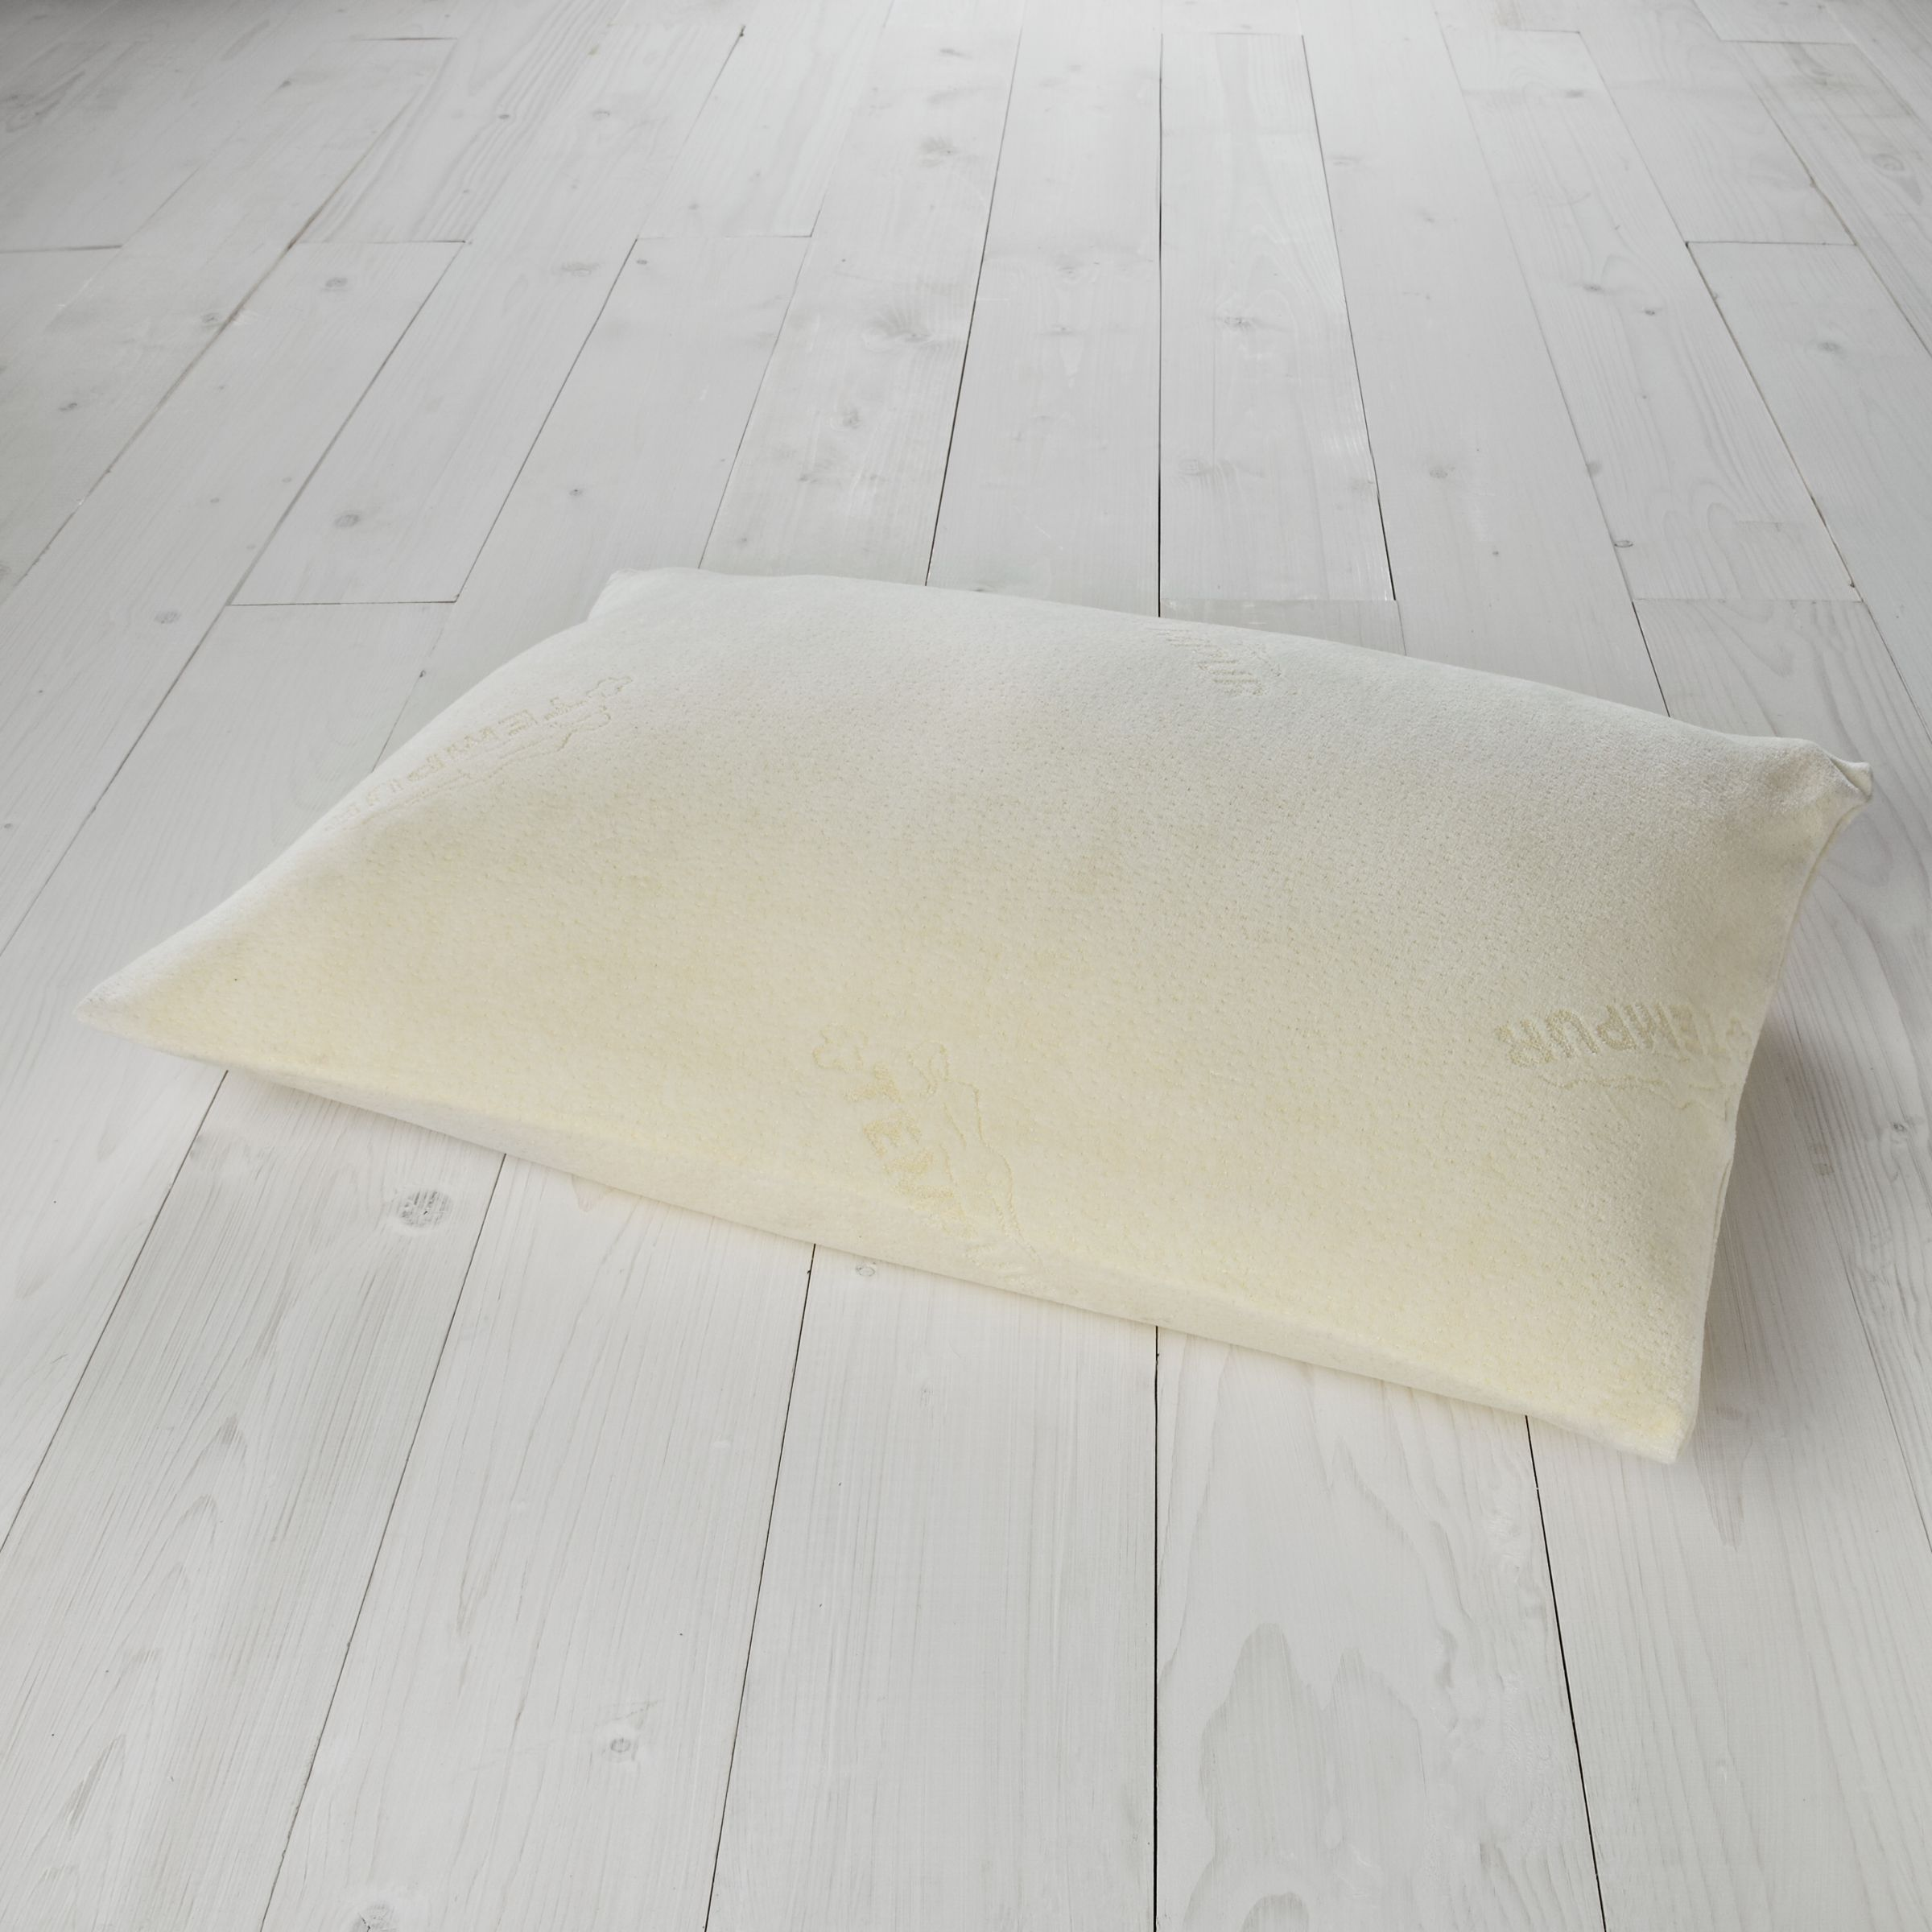 Tempur Traditional Pillow John Lewis : tempur